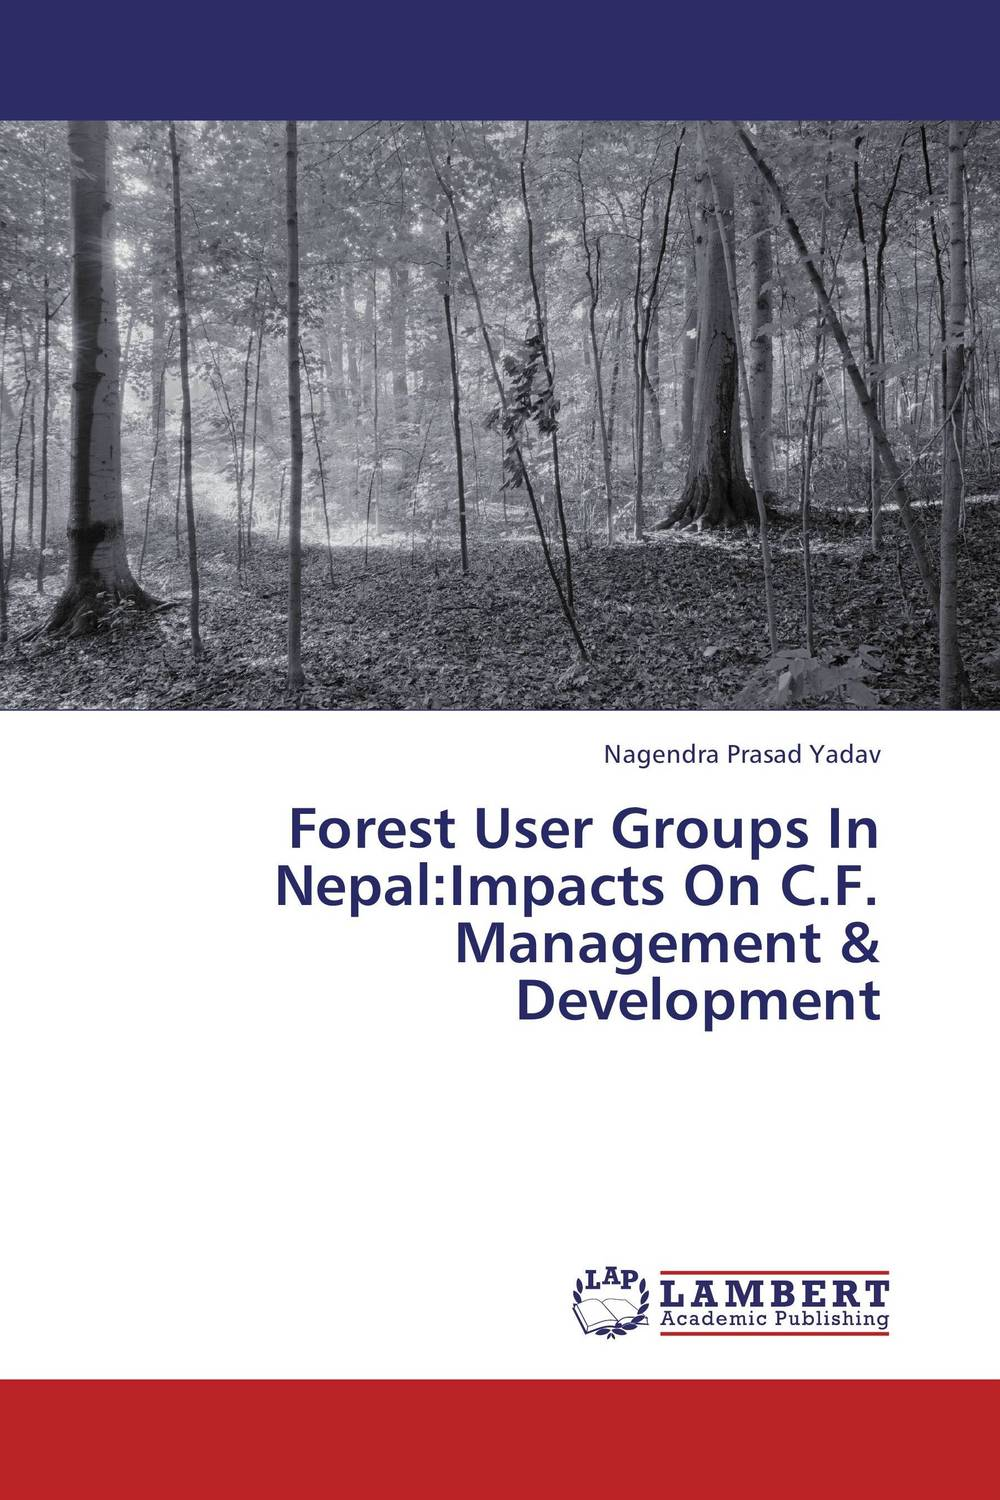 Forest User Groups In Nepal:Impacts On C.F. Management & Development maxwell musingafi raphinos alexander chabaya and emmanuel dumbu groups and community mobilisation for development